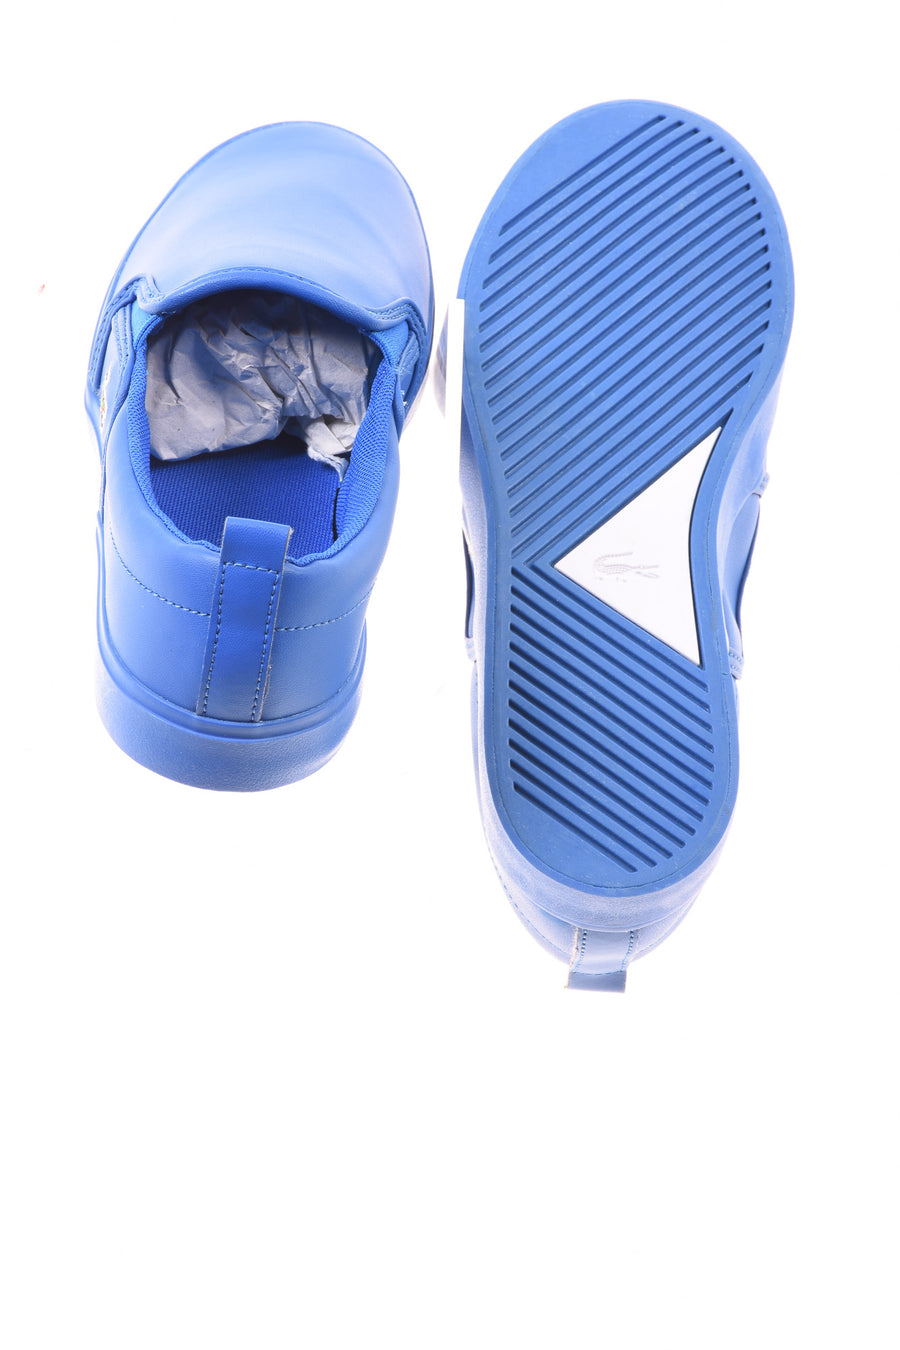 USED Lacoste Boy's Shoes 4 Blue